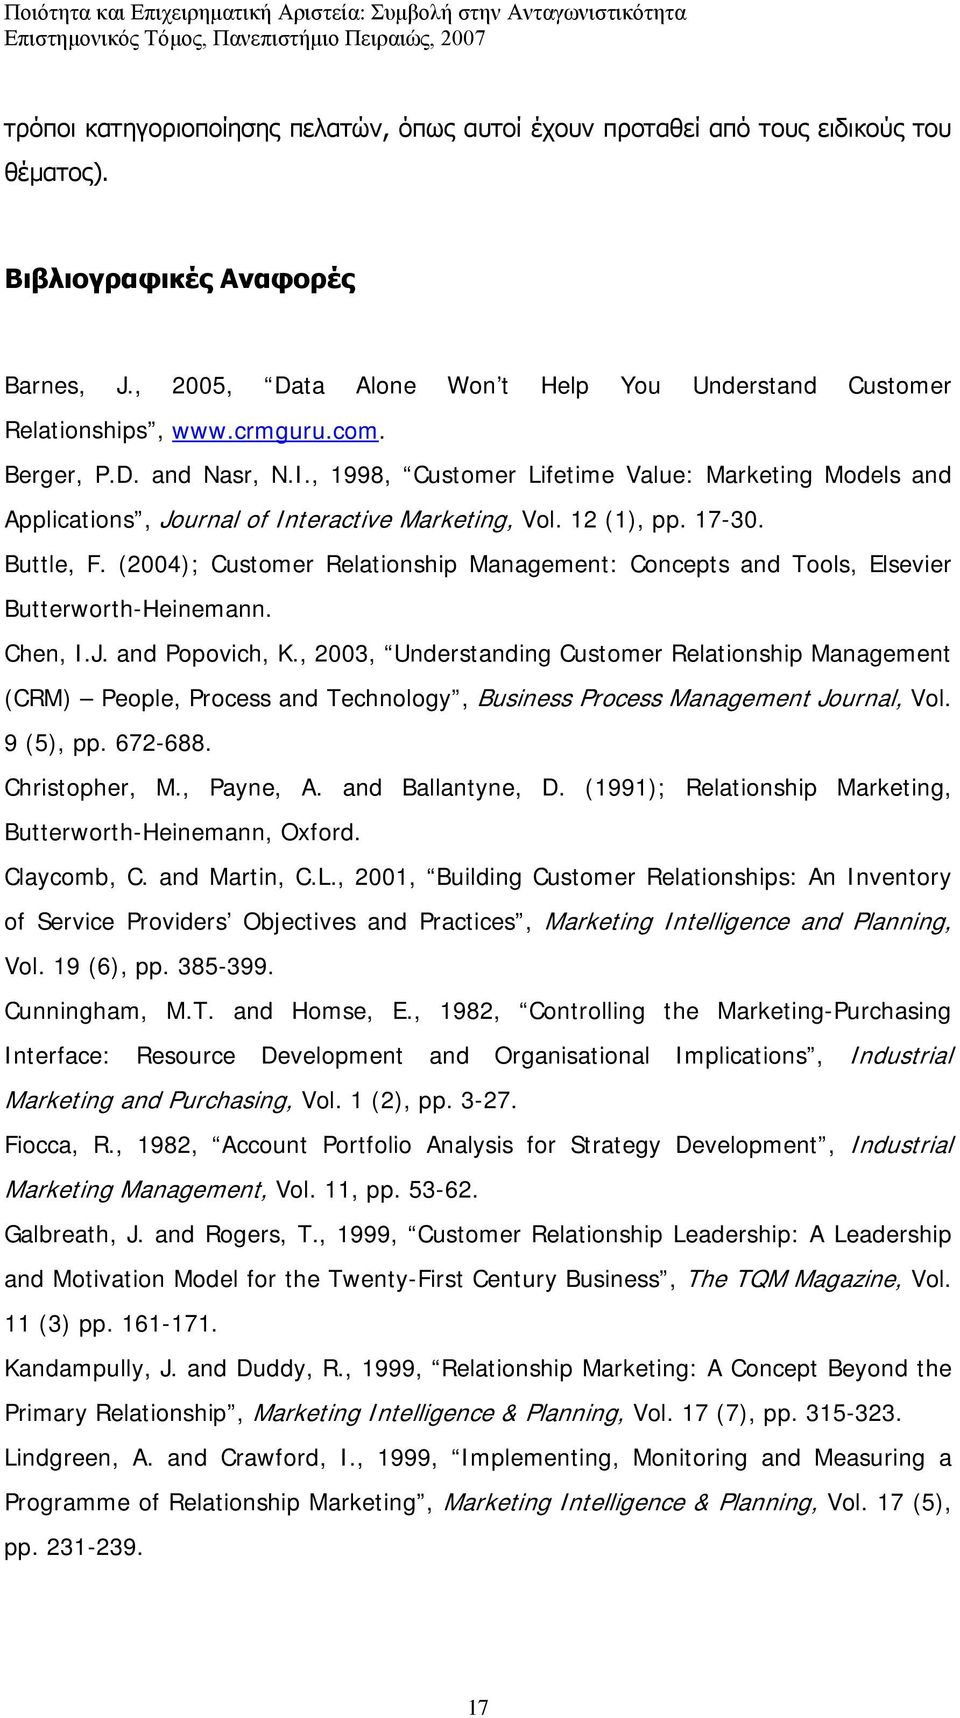 (2004); Customer Relationship Management: Concepts and Tools, Elsevier Butterworth-Heinemann. Chen, I.J. and Popovich, K.